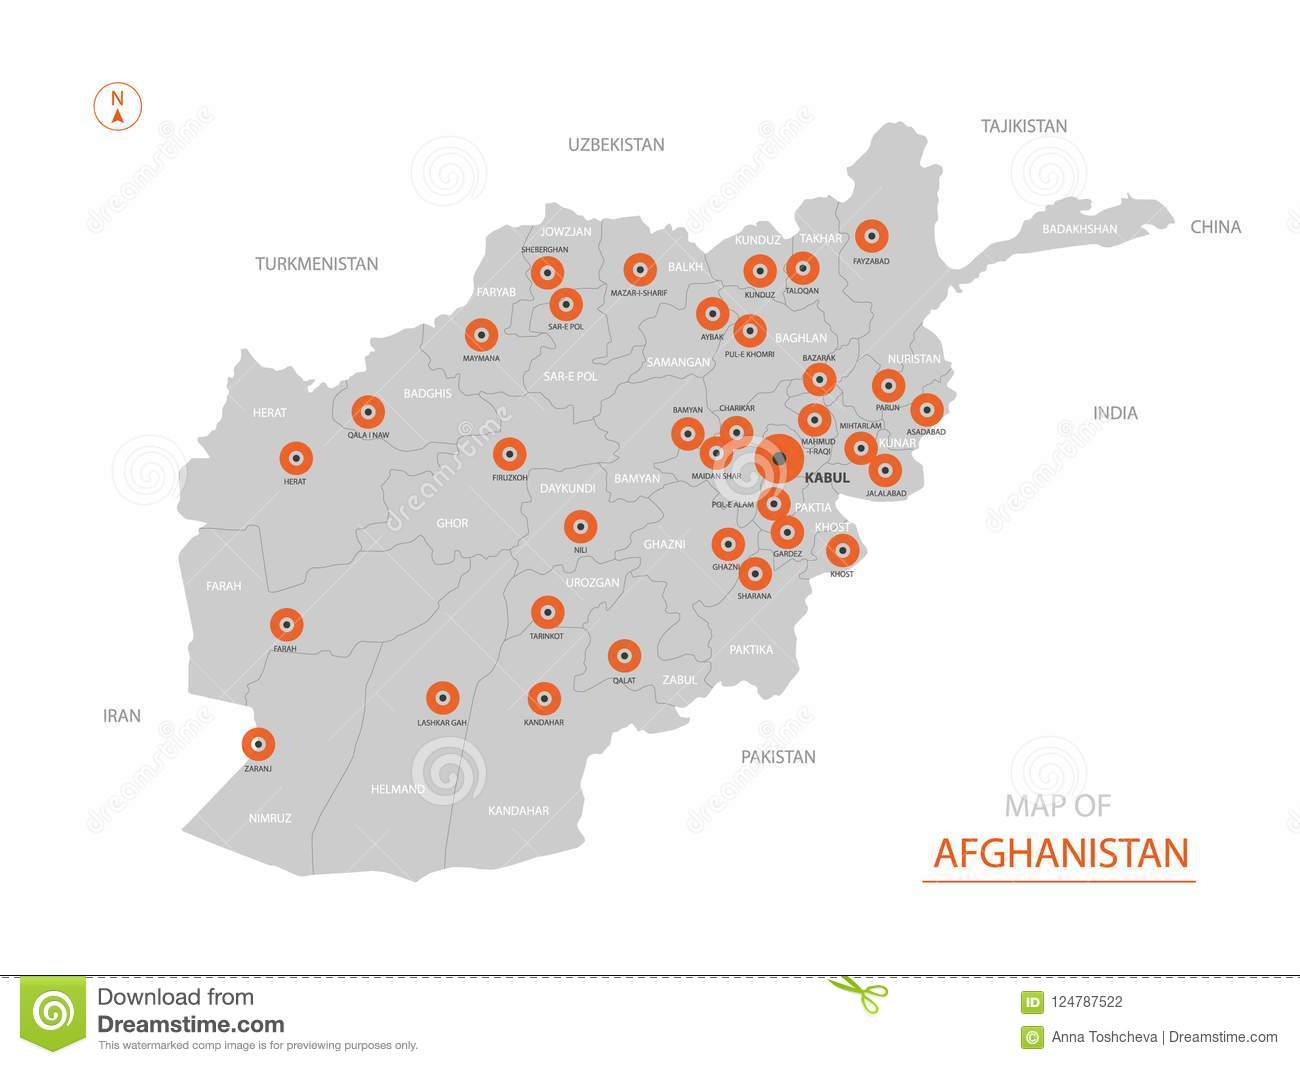 Afghanistan Map With Administrative Divisions. Stock Vector ... on the kite runner, camp leatherneck afghanistan map, panjshir afghanistan map, sharana afghanistan map, middle east map, islamabad map, bamako mali map, pakistan map, kabul international airport, kandahar afghanistan map, khyber pass, bagram afghanistan map, gardez afghanistan map, us military bases afghanistan map, pashtun people, zaranj afghanistan map, tehran iran map, beijing china map, istanbul turkey map, indonesia map, dhaka bangladesh map, kathmandu nepal map, herat afghanistan map, hindu kush, calcutta map,